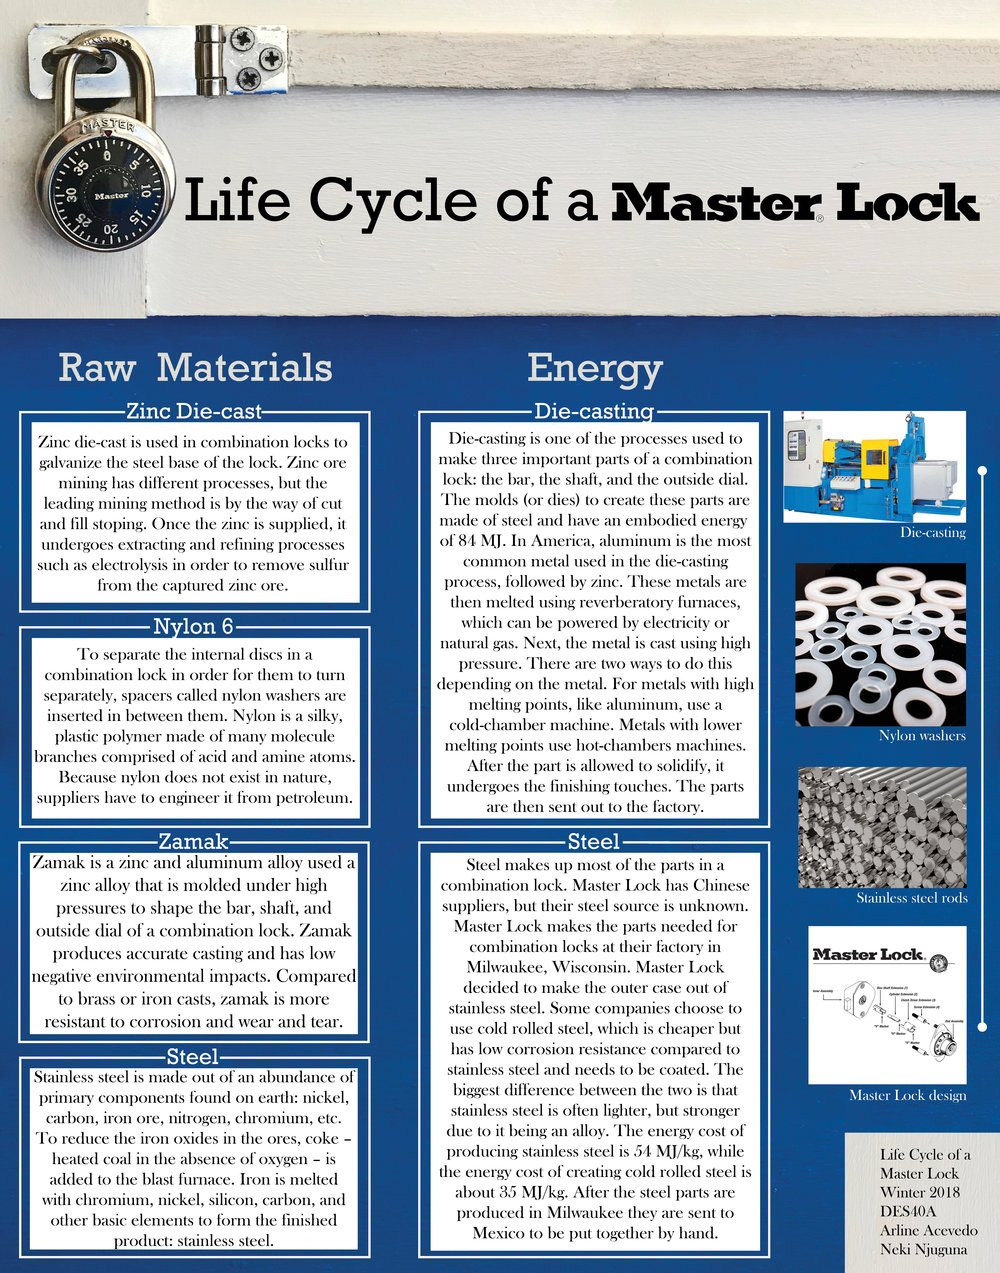 masterlocklifecycle.jpg